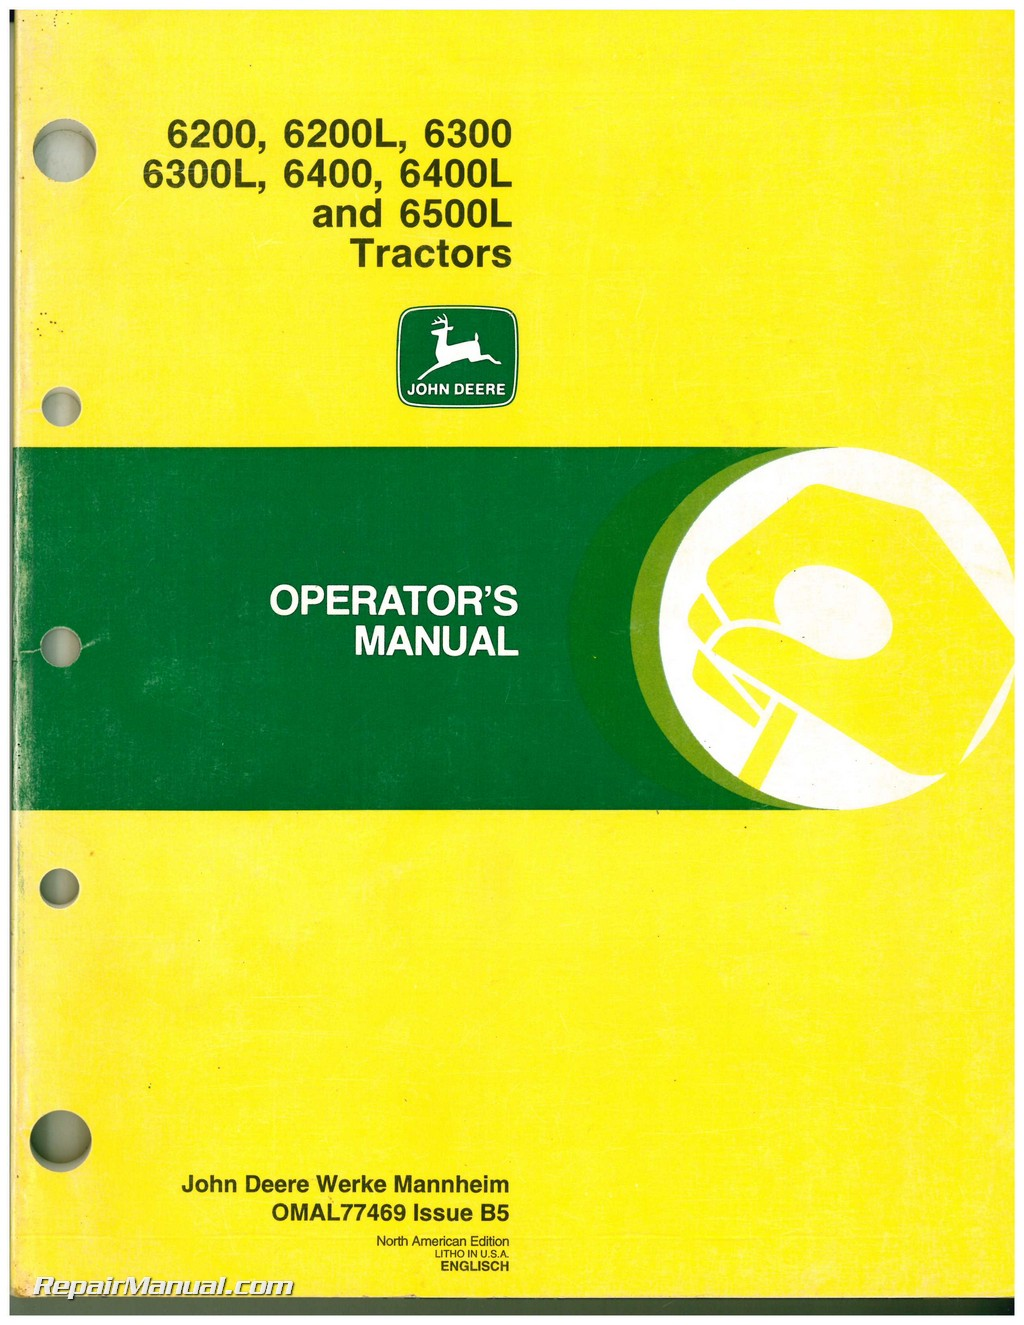 Jd 6300 Wiring Diagram Free For You John Deere Tractor Pto Used 6200 6200l 6300l 6400 6400l And 6500l Rh Repairmanual Com 6603